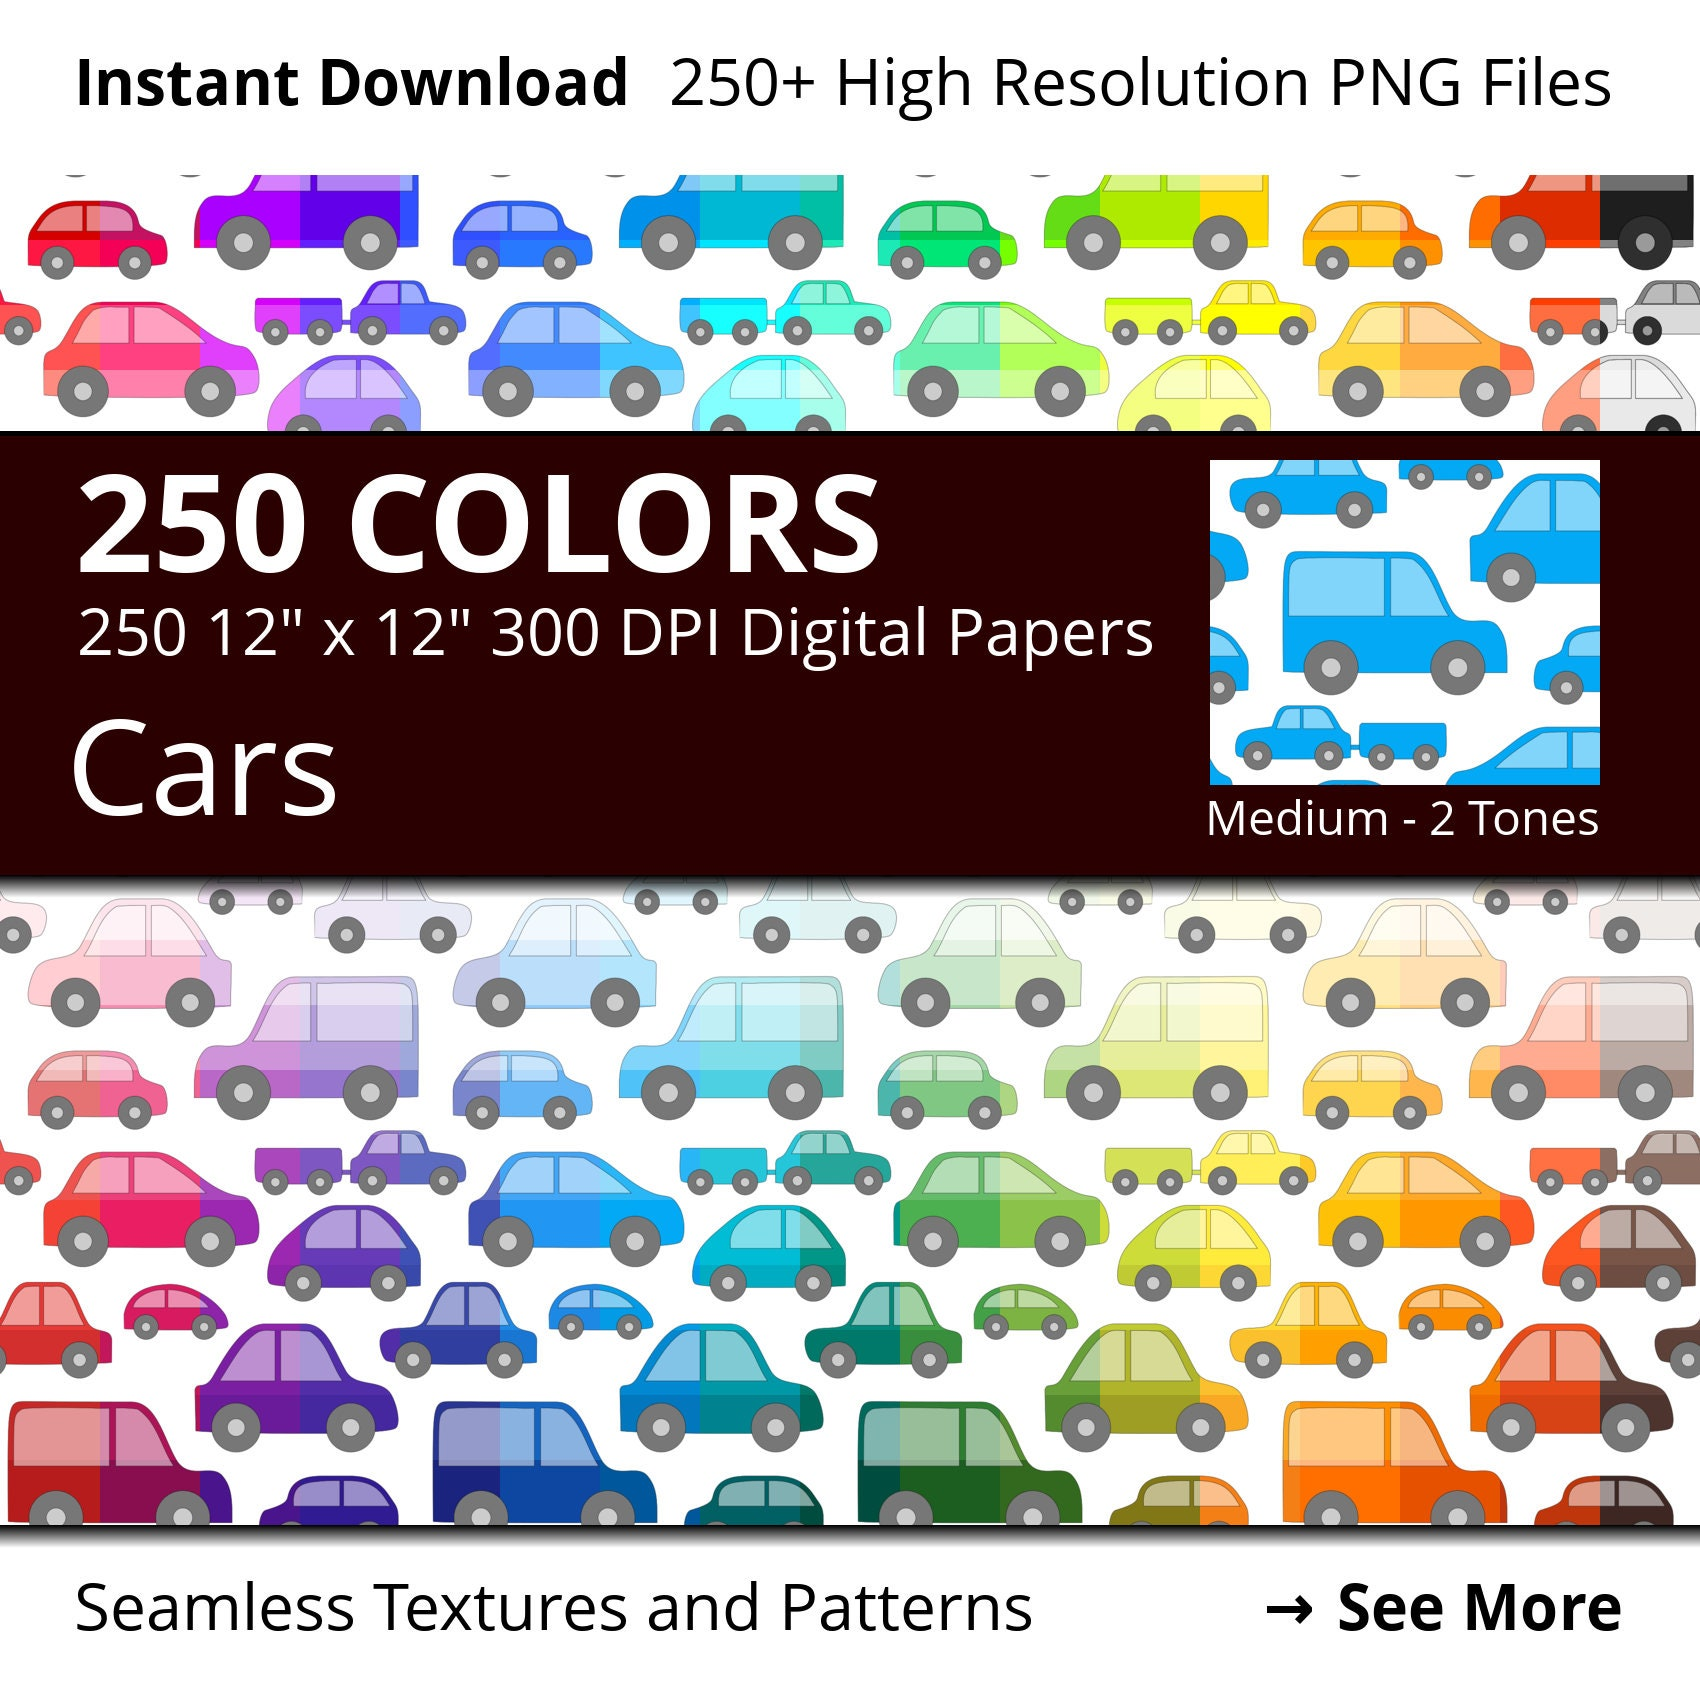 250 Cars Digital Paper Pack, 250 Colors Vehicles Digital Paper